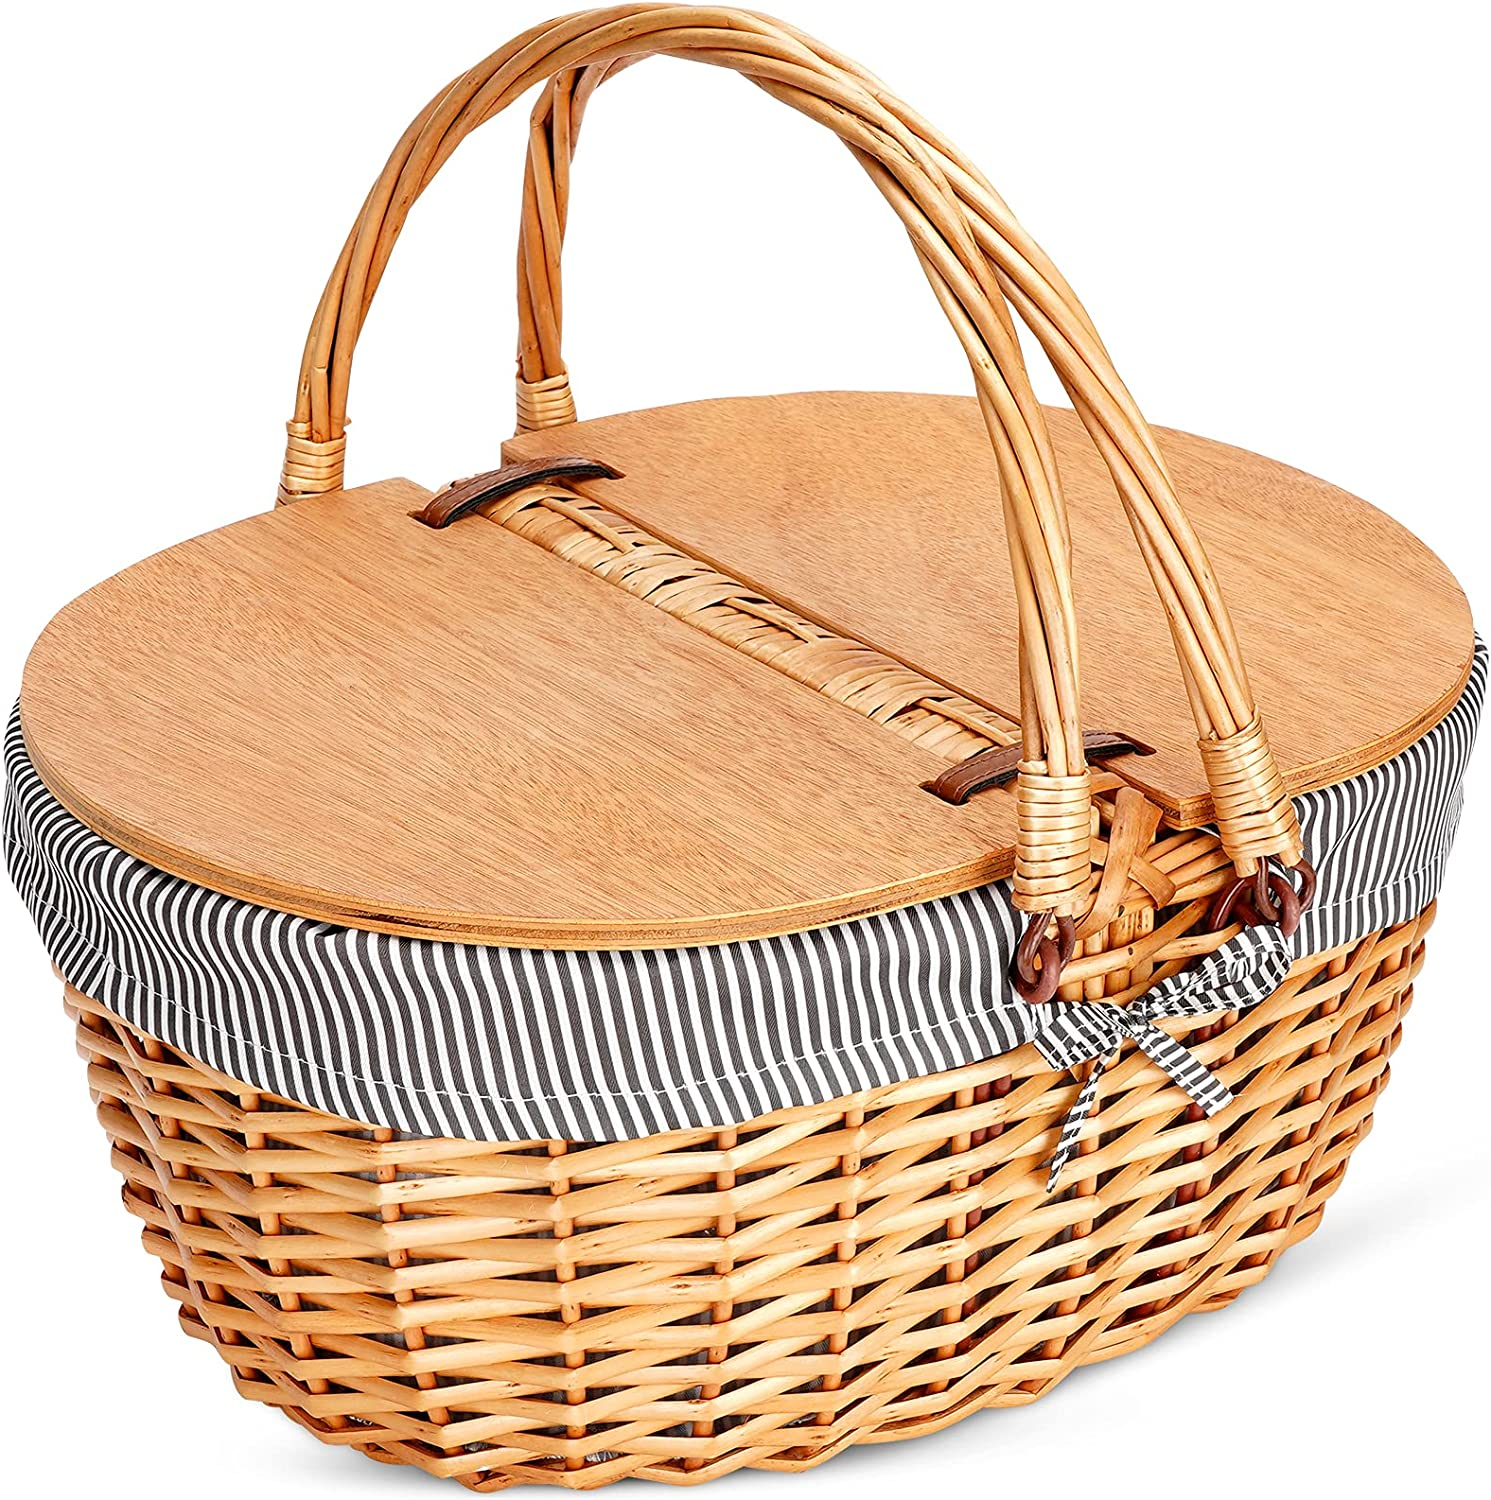 Wicker Picnic Basket with Liner, Classic, Vintage-Style Picnic Basket, Wicker Picnic Hamper for Camping,Outdoor,Valentine Day,Thanks Giving,Birthday (S Grey Stripe)